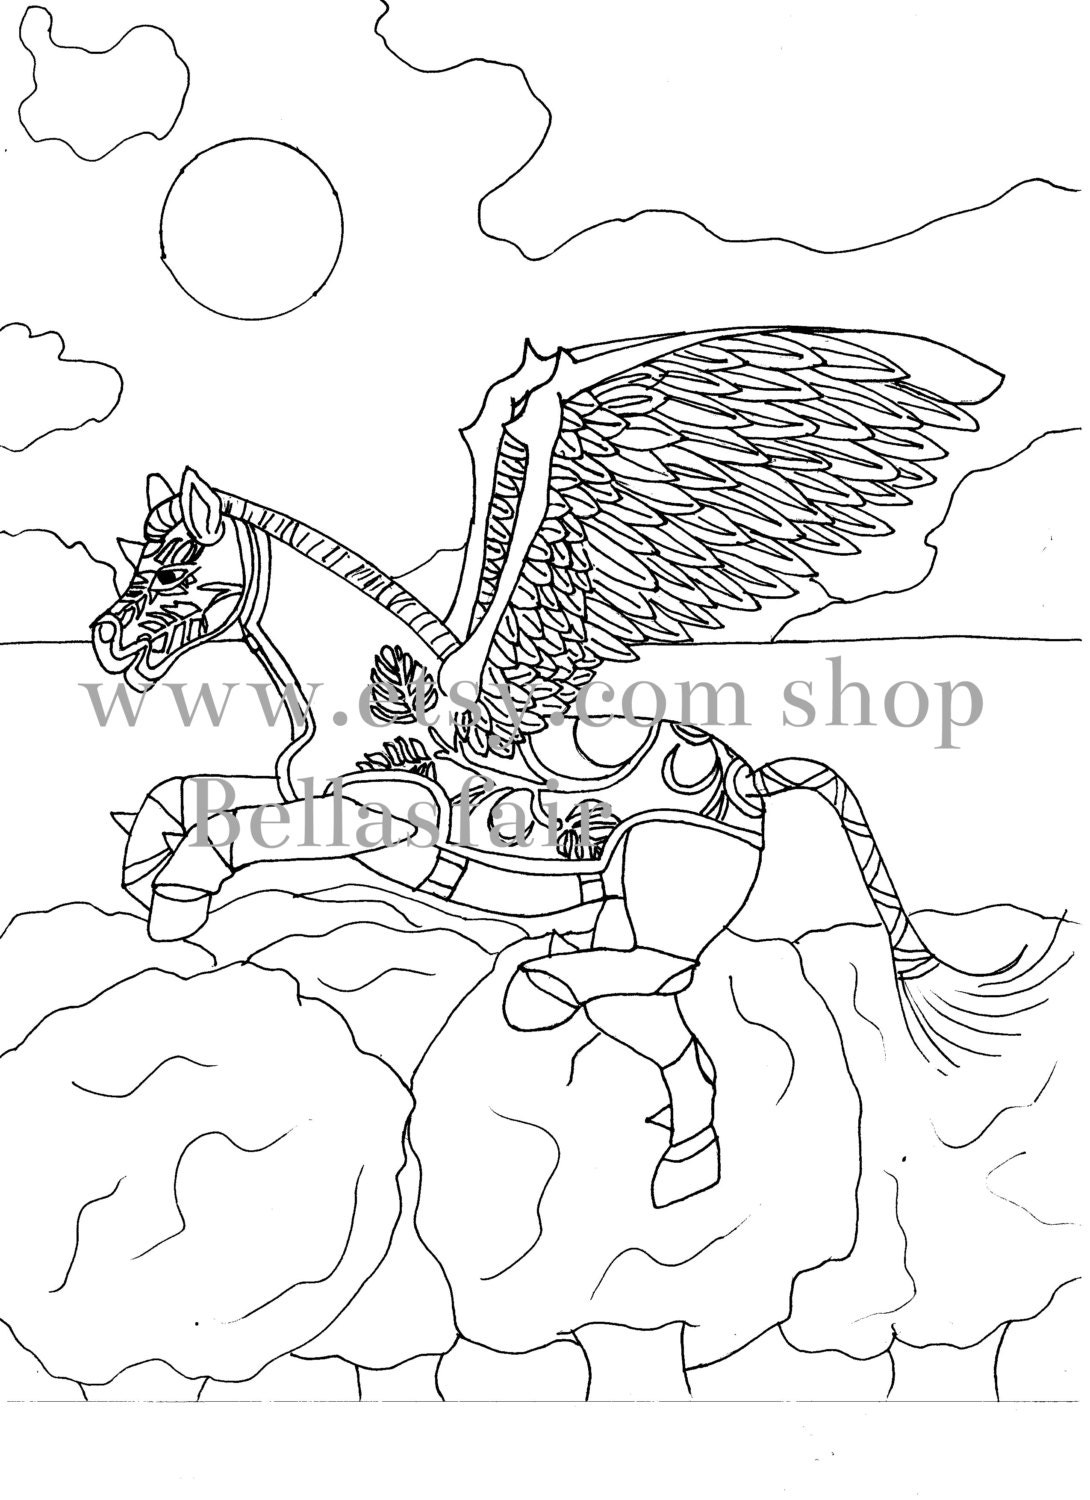 Hand Drawn Mythical Horse coloring coloring page fantasy | Etsy